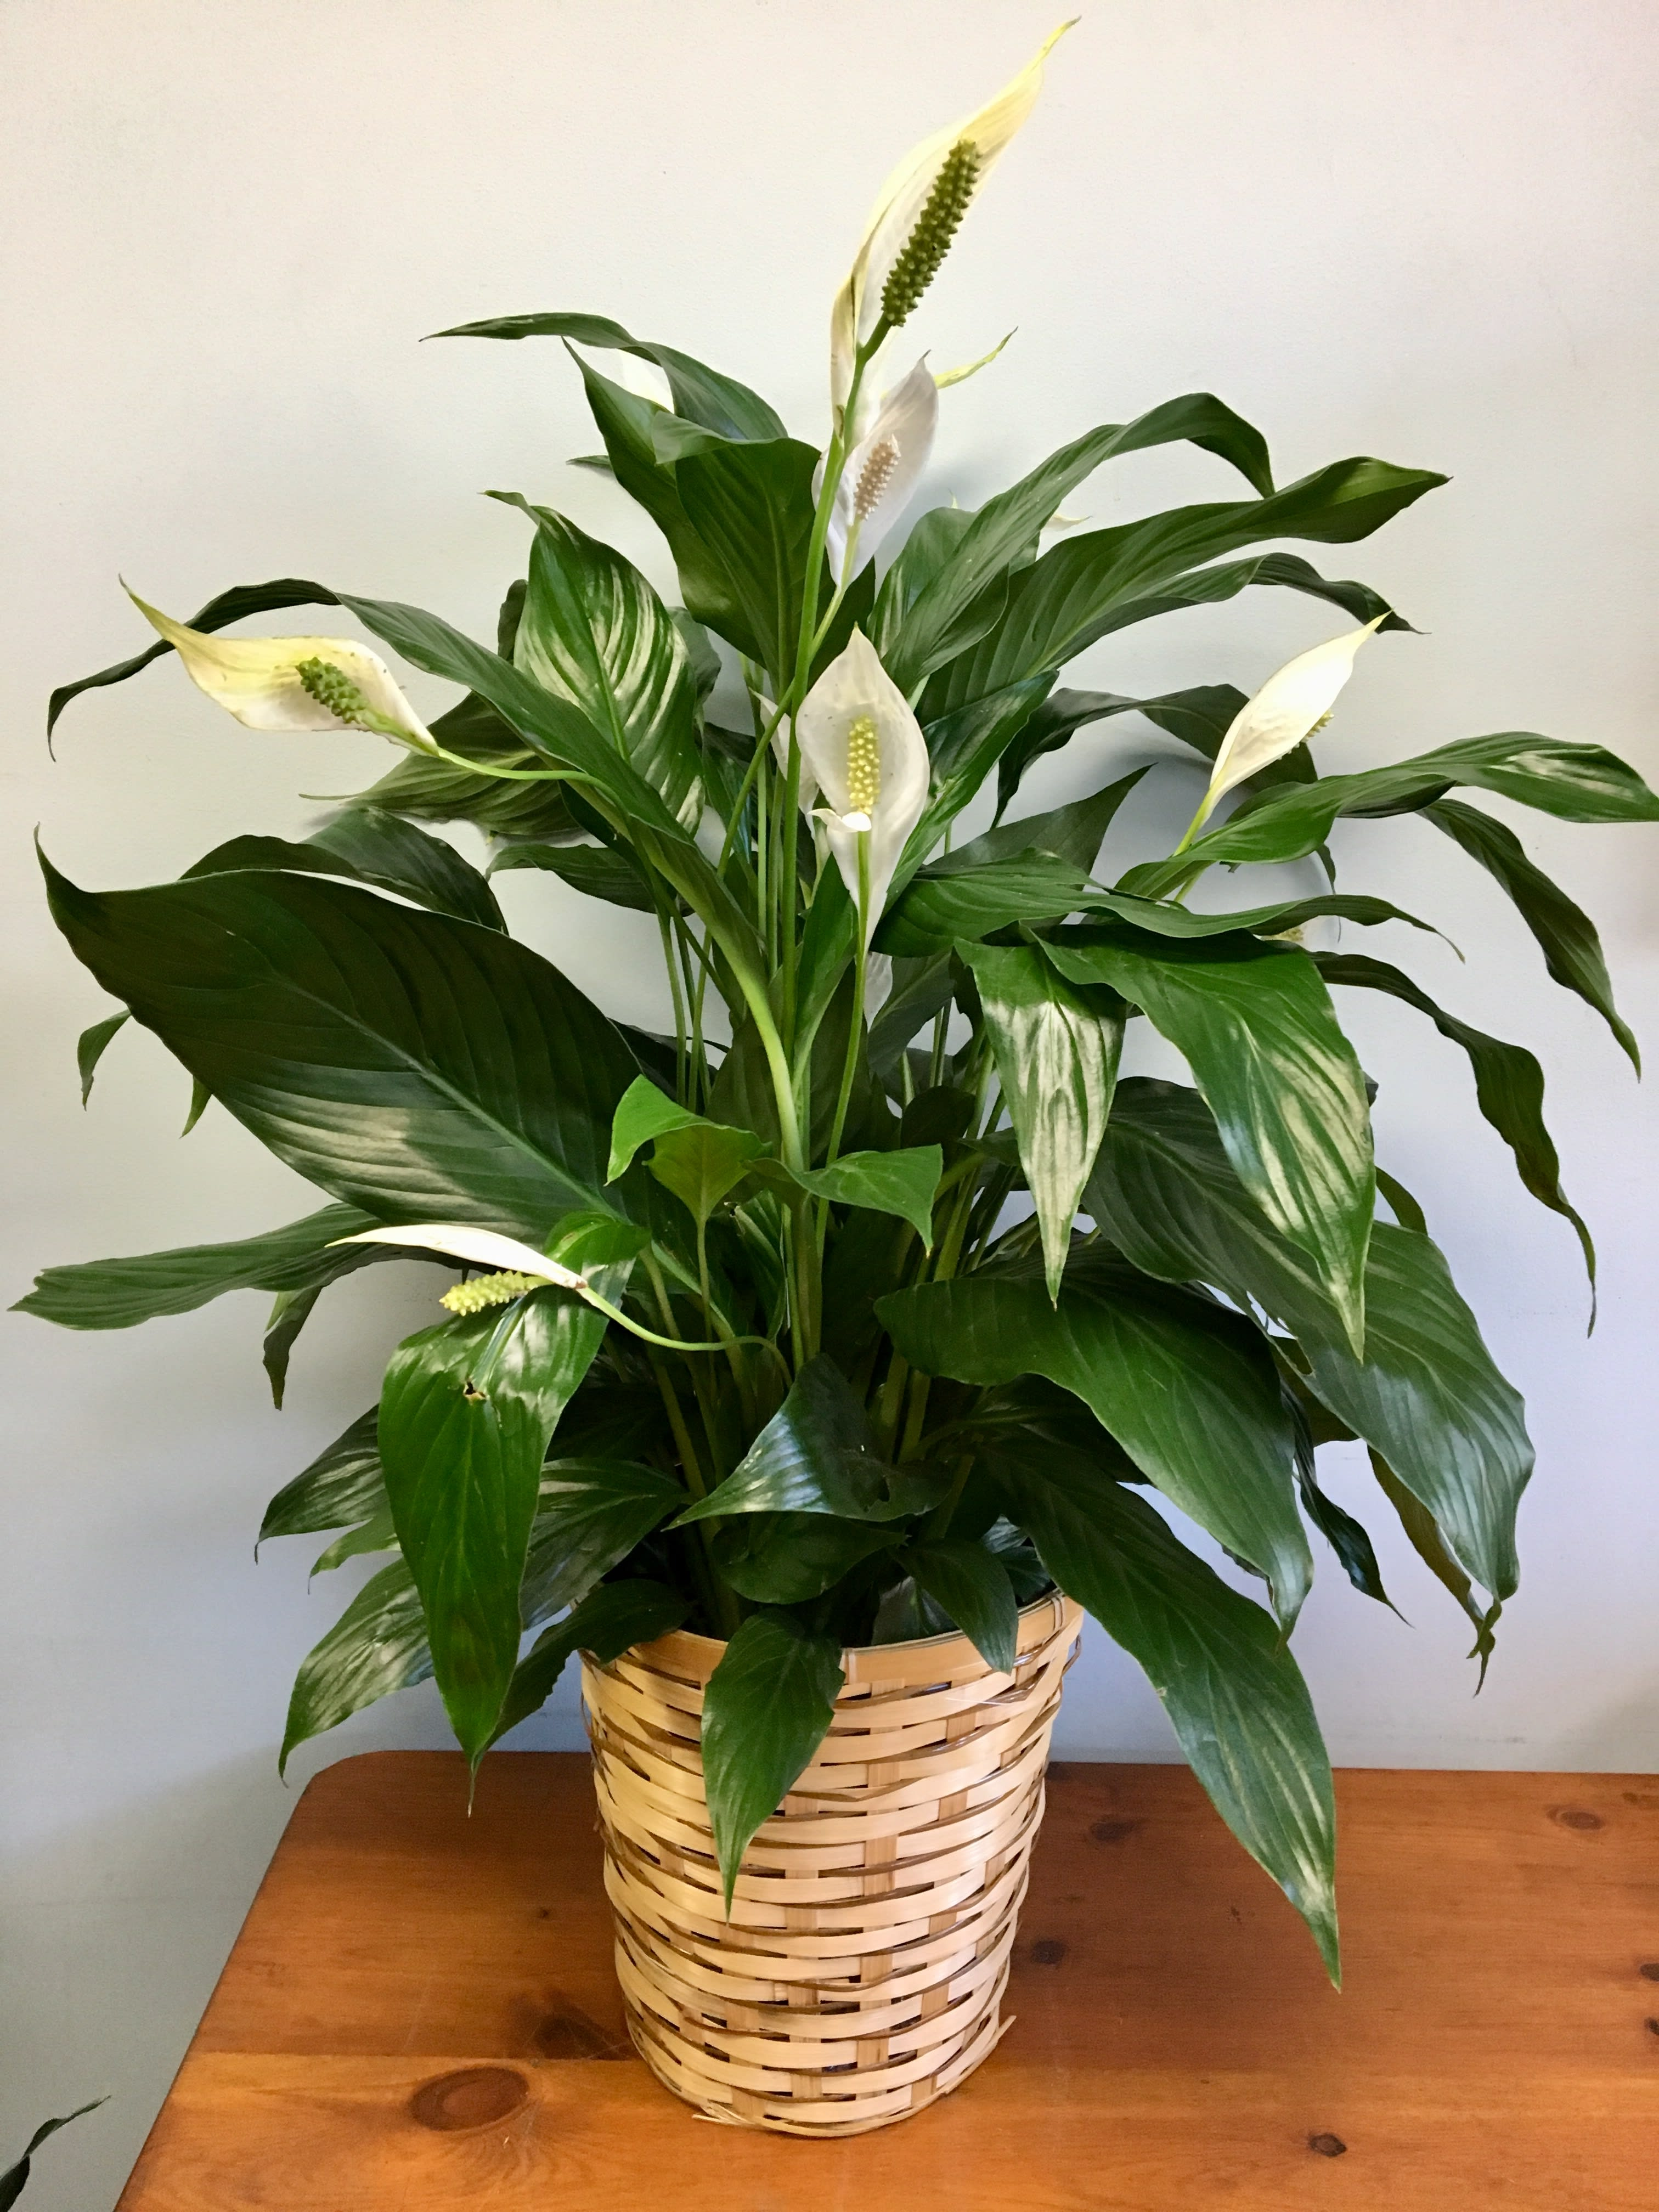 Peace Lily Floor Plant in Cambridge, MA | Coady Florist on peace lily family plant, chinese evergreen house plant, droopy peace lily plant, funeral peace lily plant, peace lily potted plant, peace lily plant benefits, classic peace lily plant, black bamboo potted plant, white and green leaves house plant, croton house plant, peace plant brown leaves, dragon plant, holly house plant, zamiifolia house plant, problems with peace lily plant, weeping fig house plant, marginata house plant, artificial bamboo house plant, black gold lily plant, pineapple plant house plant,